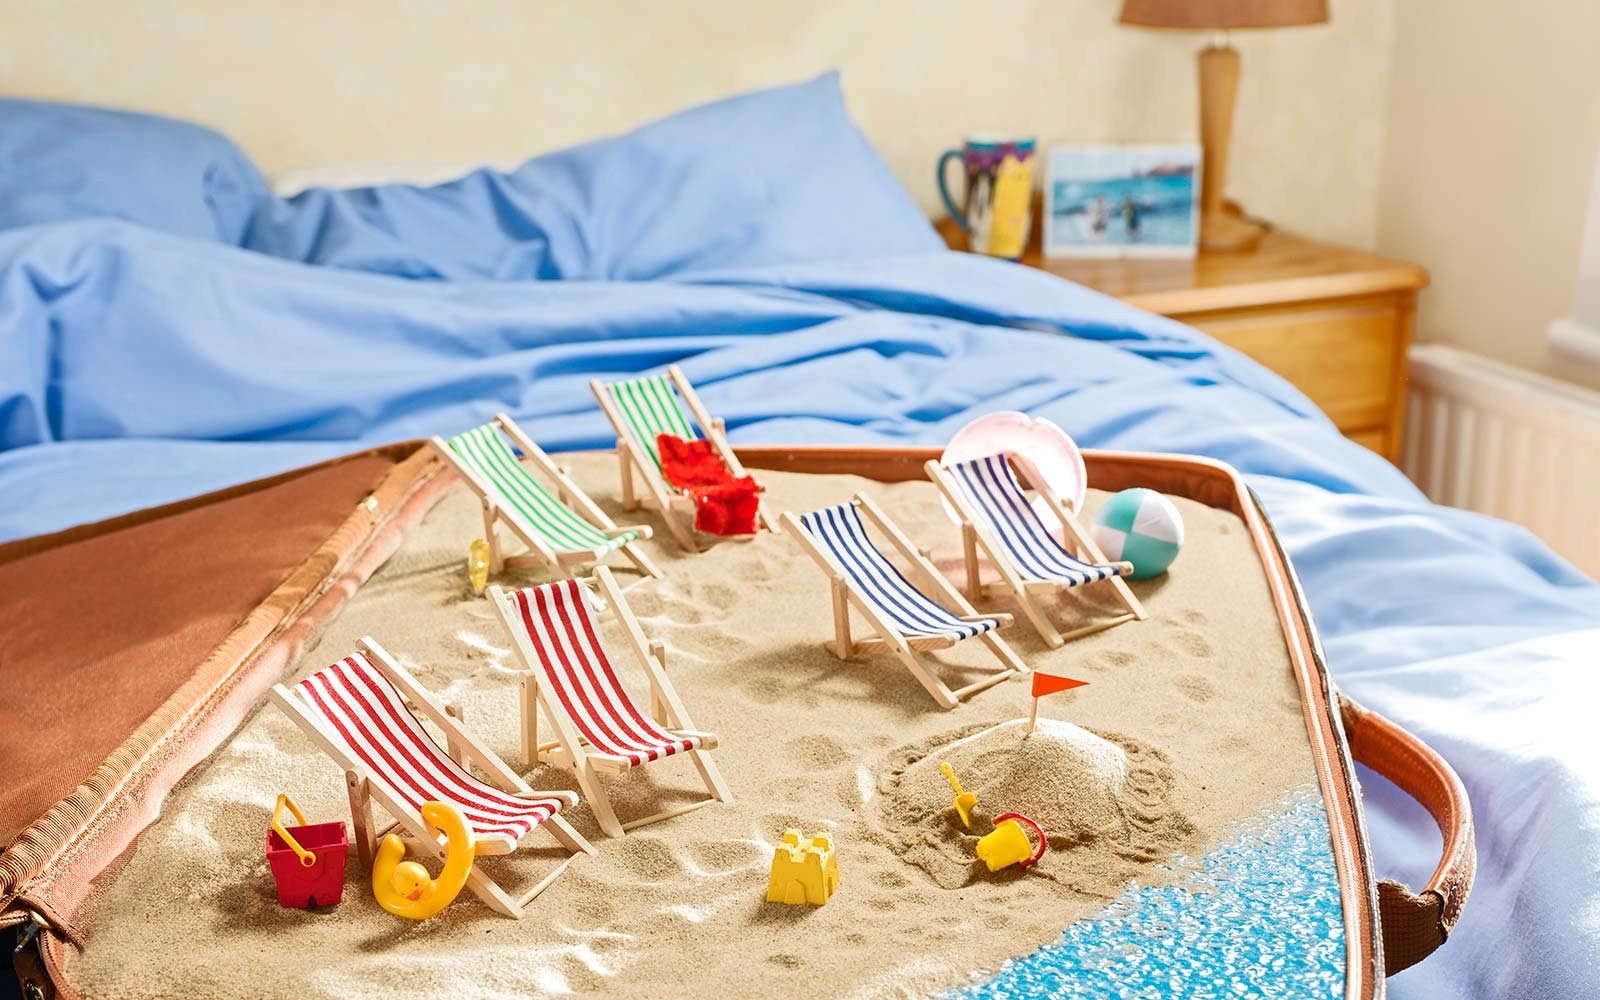 beach, beach ball, beach towels, suitcase, deck chairs, holidays, island, sand castles, sea, suitcase, Summer, Vacations